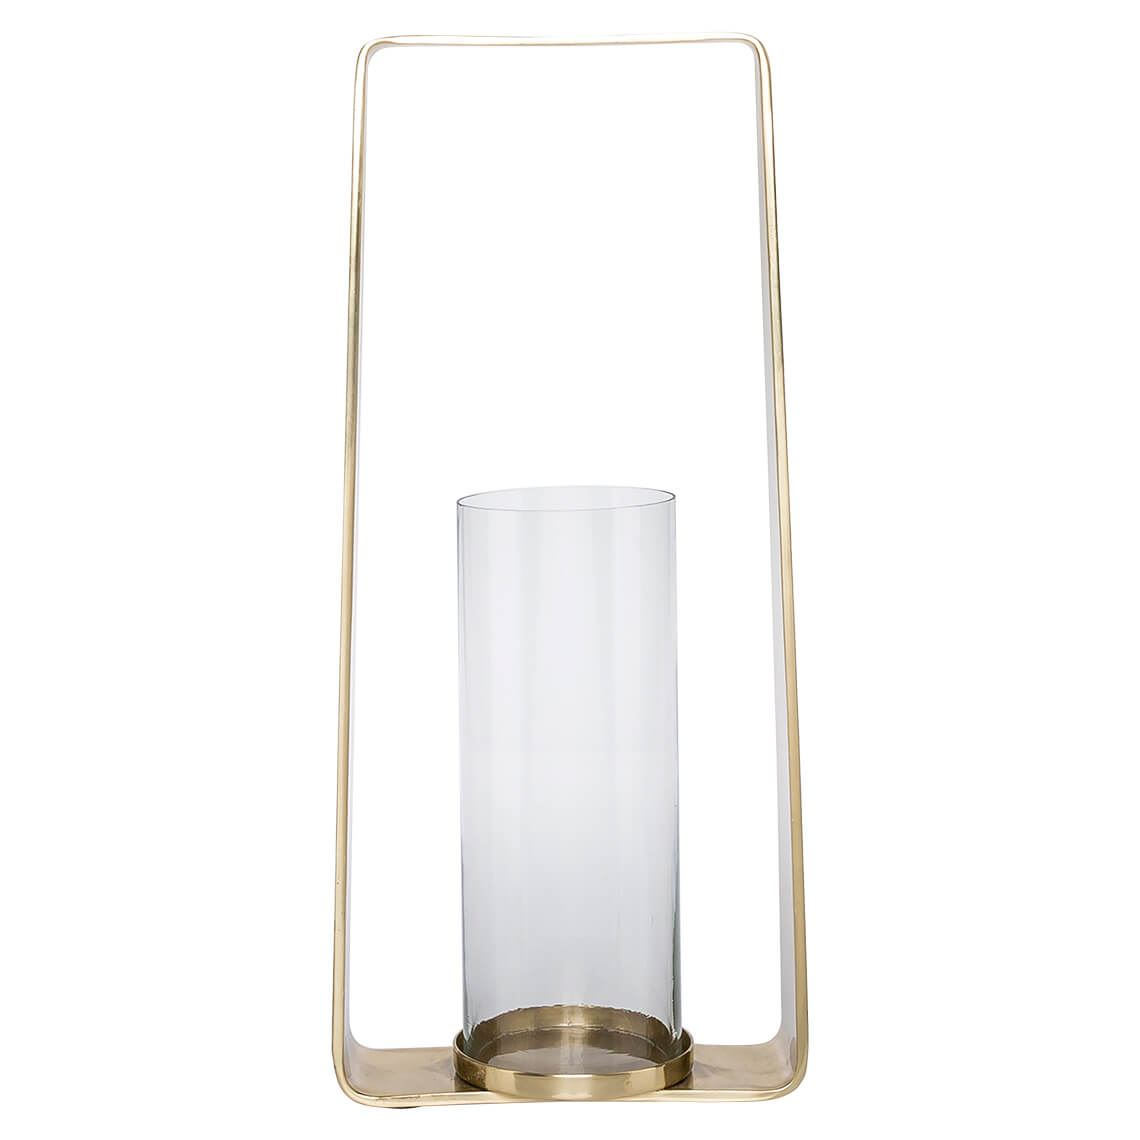 Cankiri Large Candle Holder, Colour Size W 22cm x D 11cm x H 48cm in Gold Aluminium/Glass Freedom by Freedom, a Plants for sale on Style Sourcebook